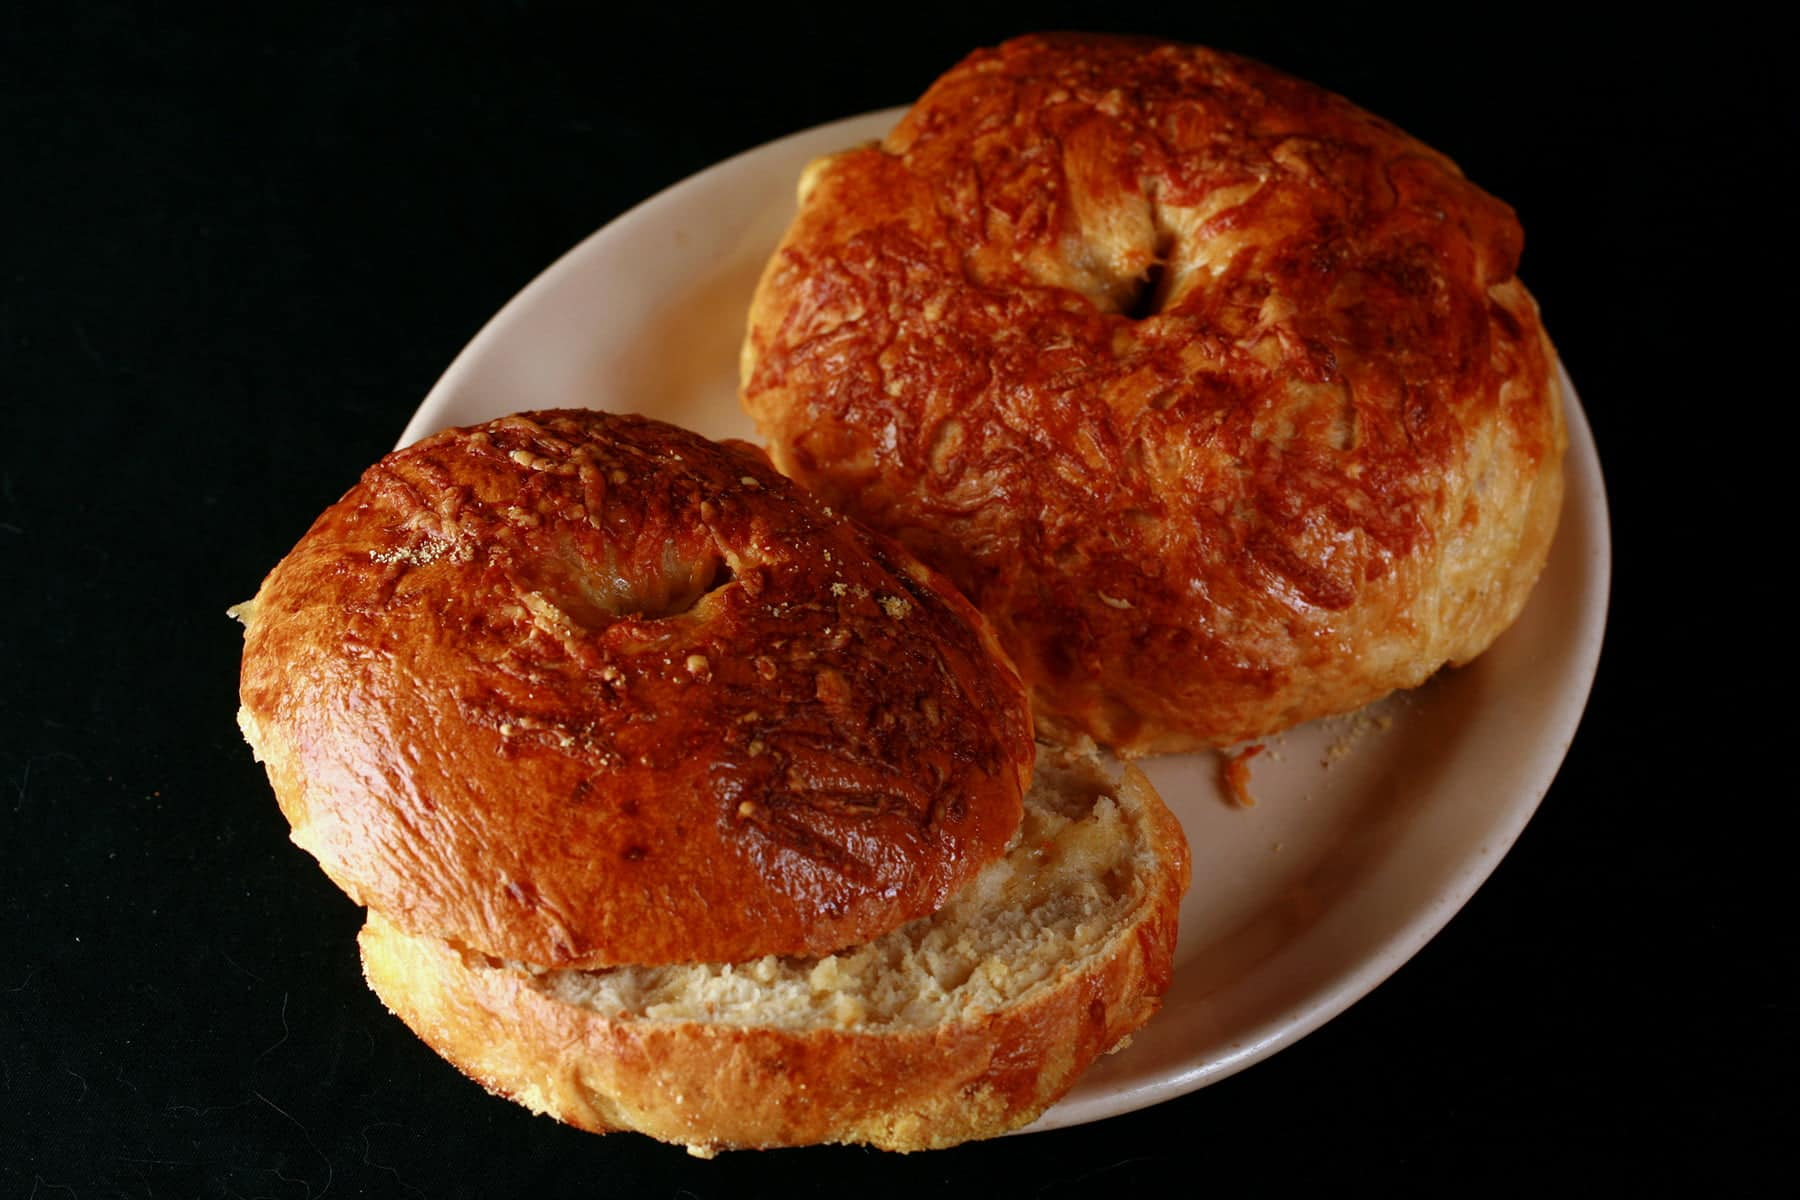 Two cheese covered bagels on an oval plate. The bagel in the foreground has been sliced in half.